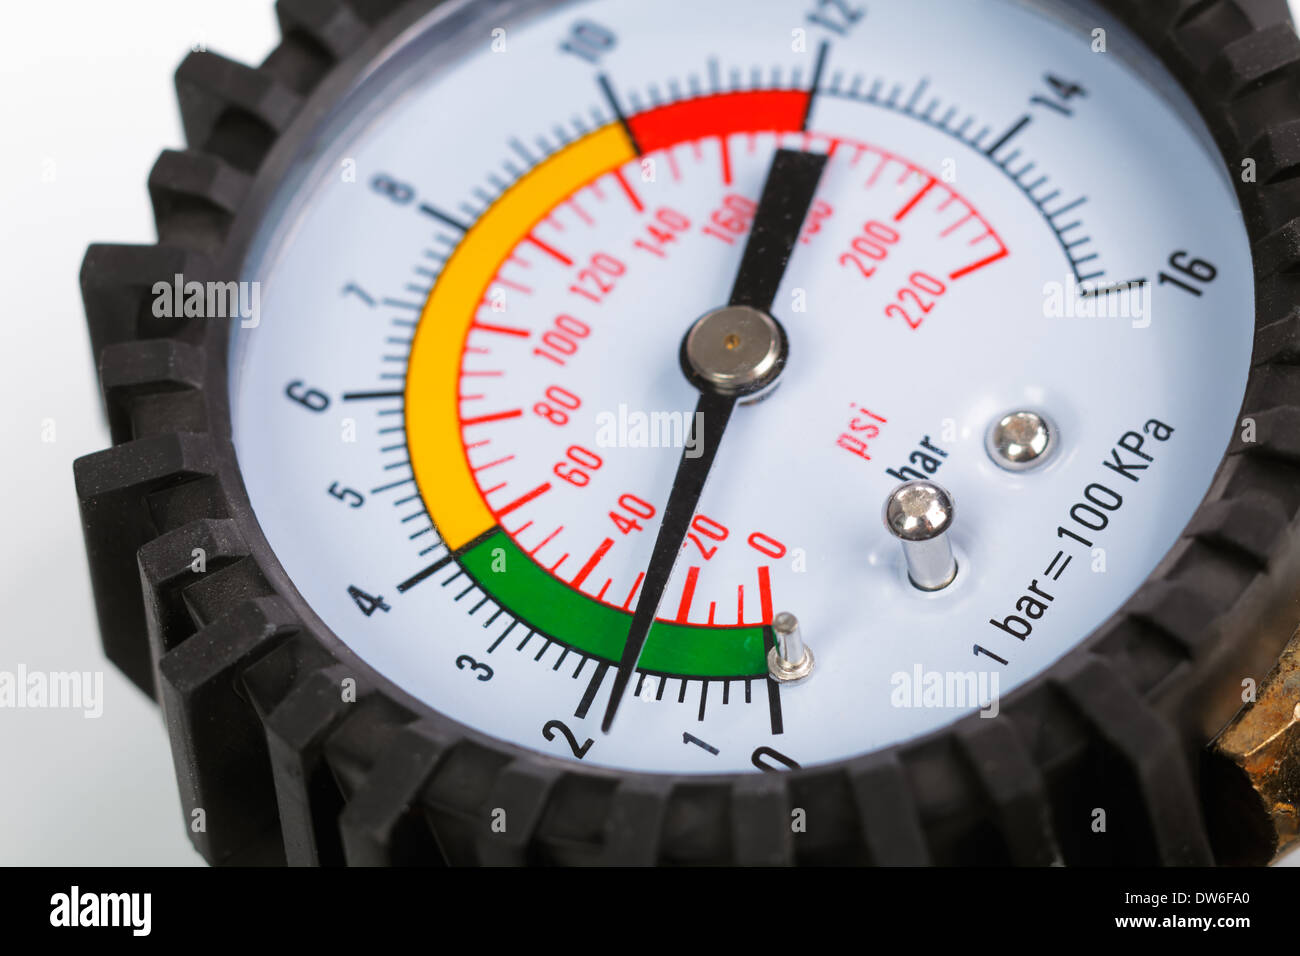 A compressor pressure gauge on a white background - Stock Image